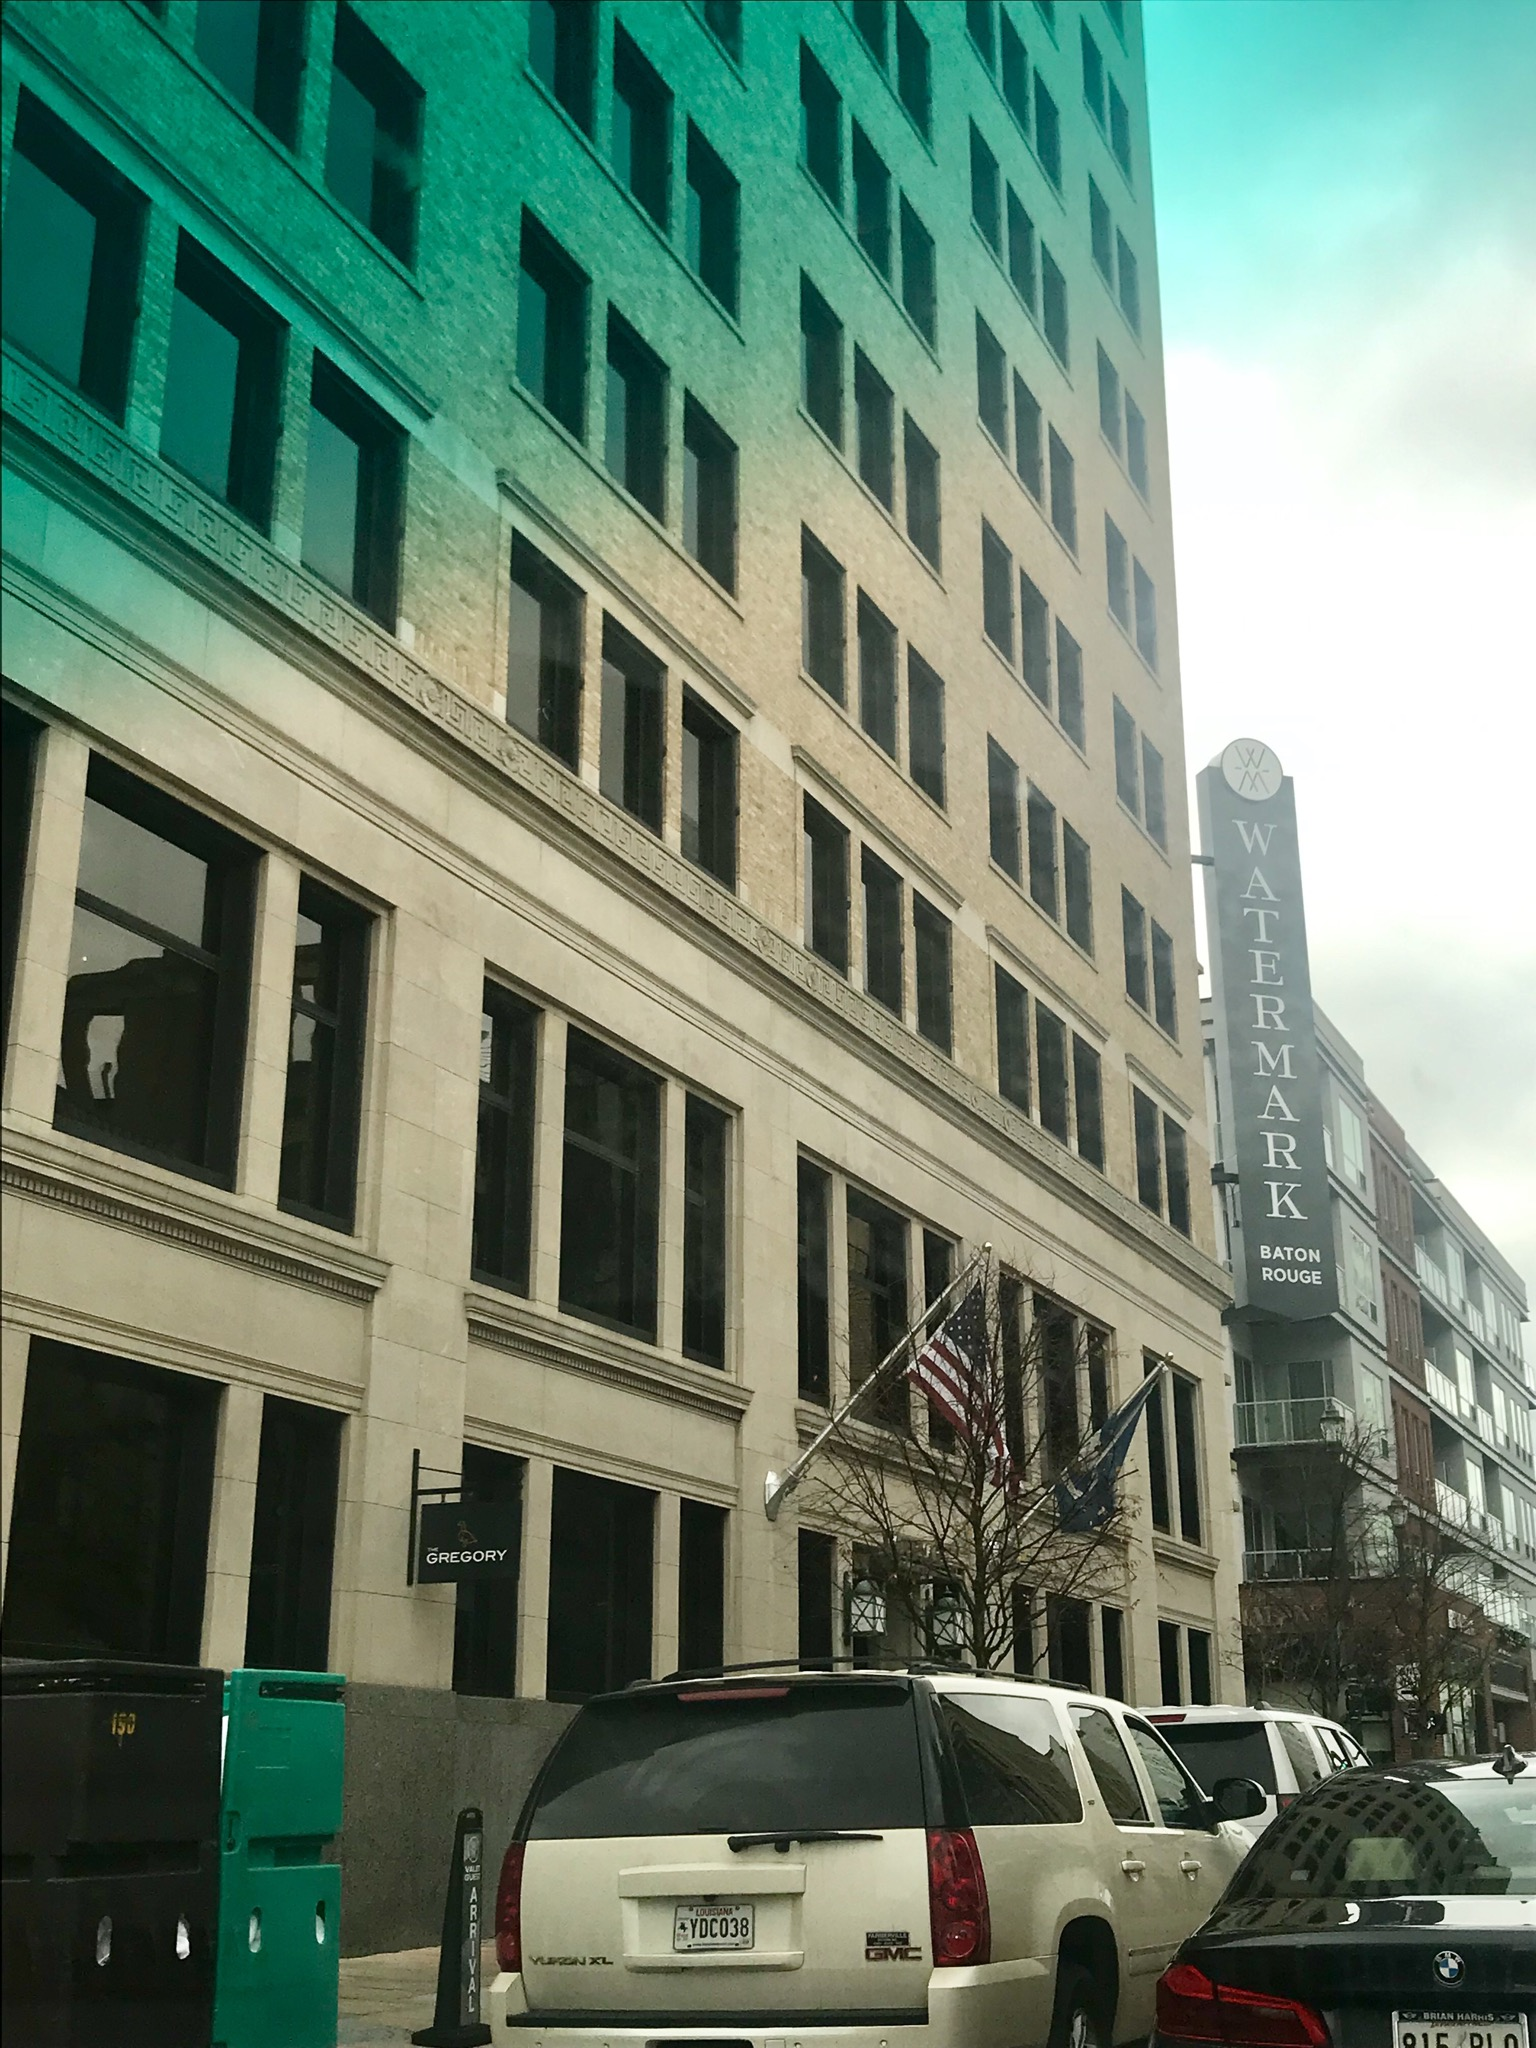 Watermark Hotel - We had a great stay at this well-appointed and conveniently located hotel